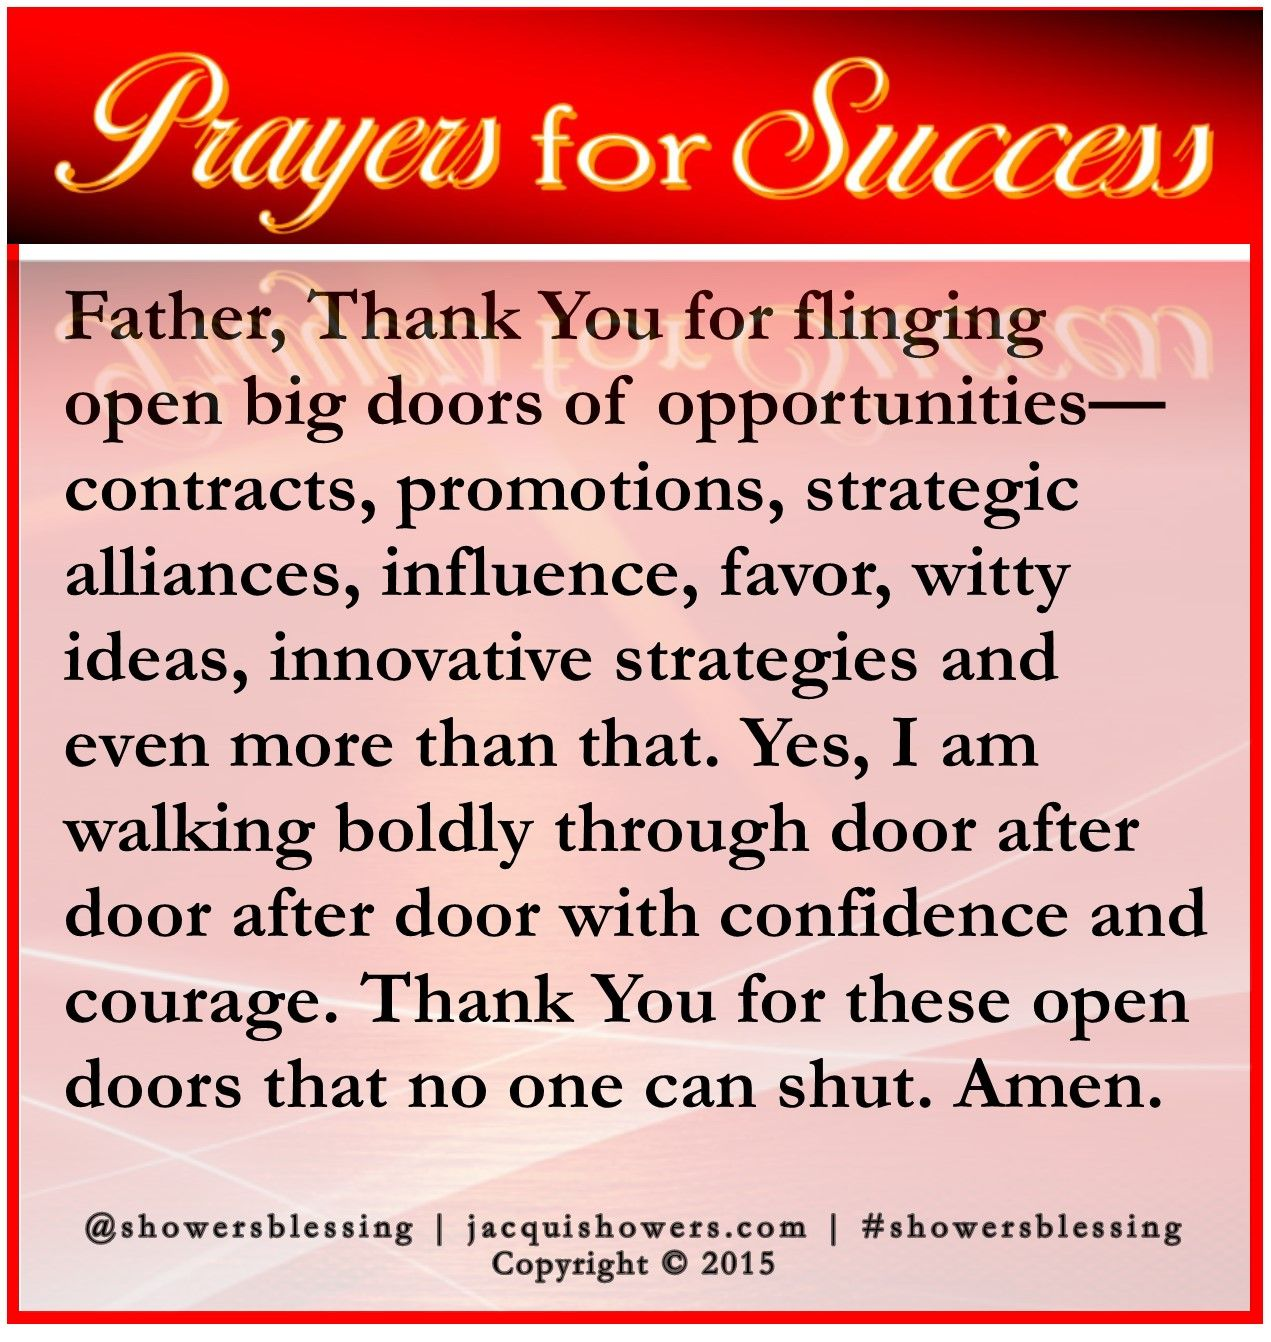 PRAYER FOR SUCCESS Oct 24 | Leadership | Prayer for success